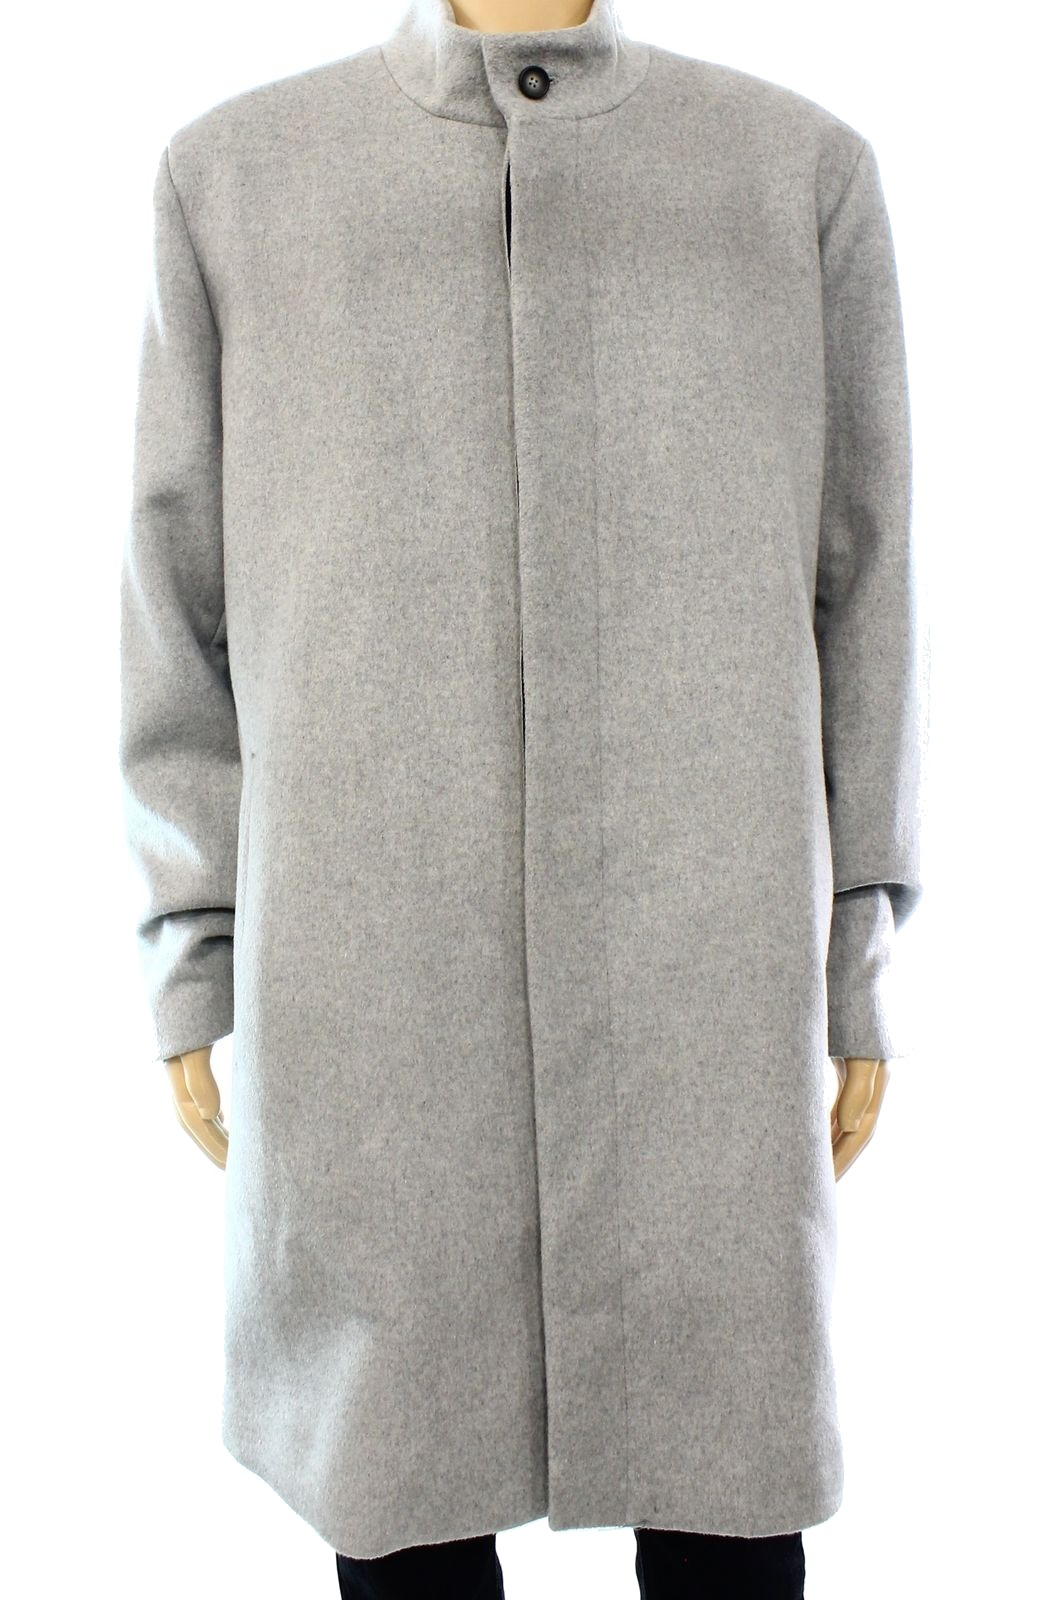 Alfani New Gray Heather Mens Size Small S Whispy Top Coat Wool by Mens Wool Coats